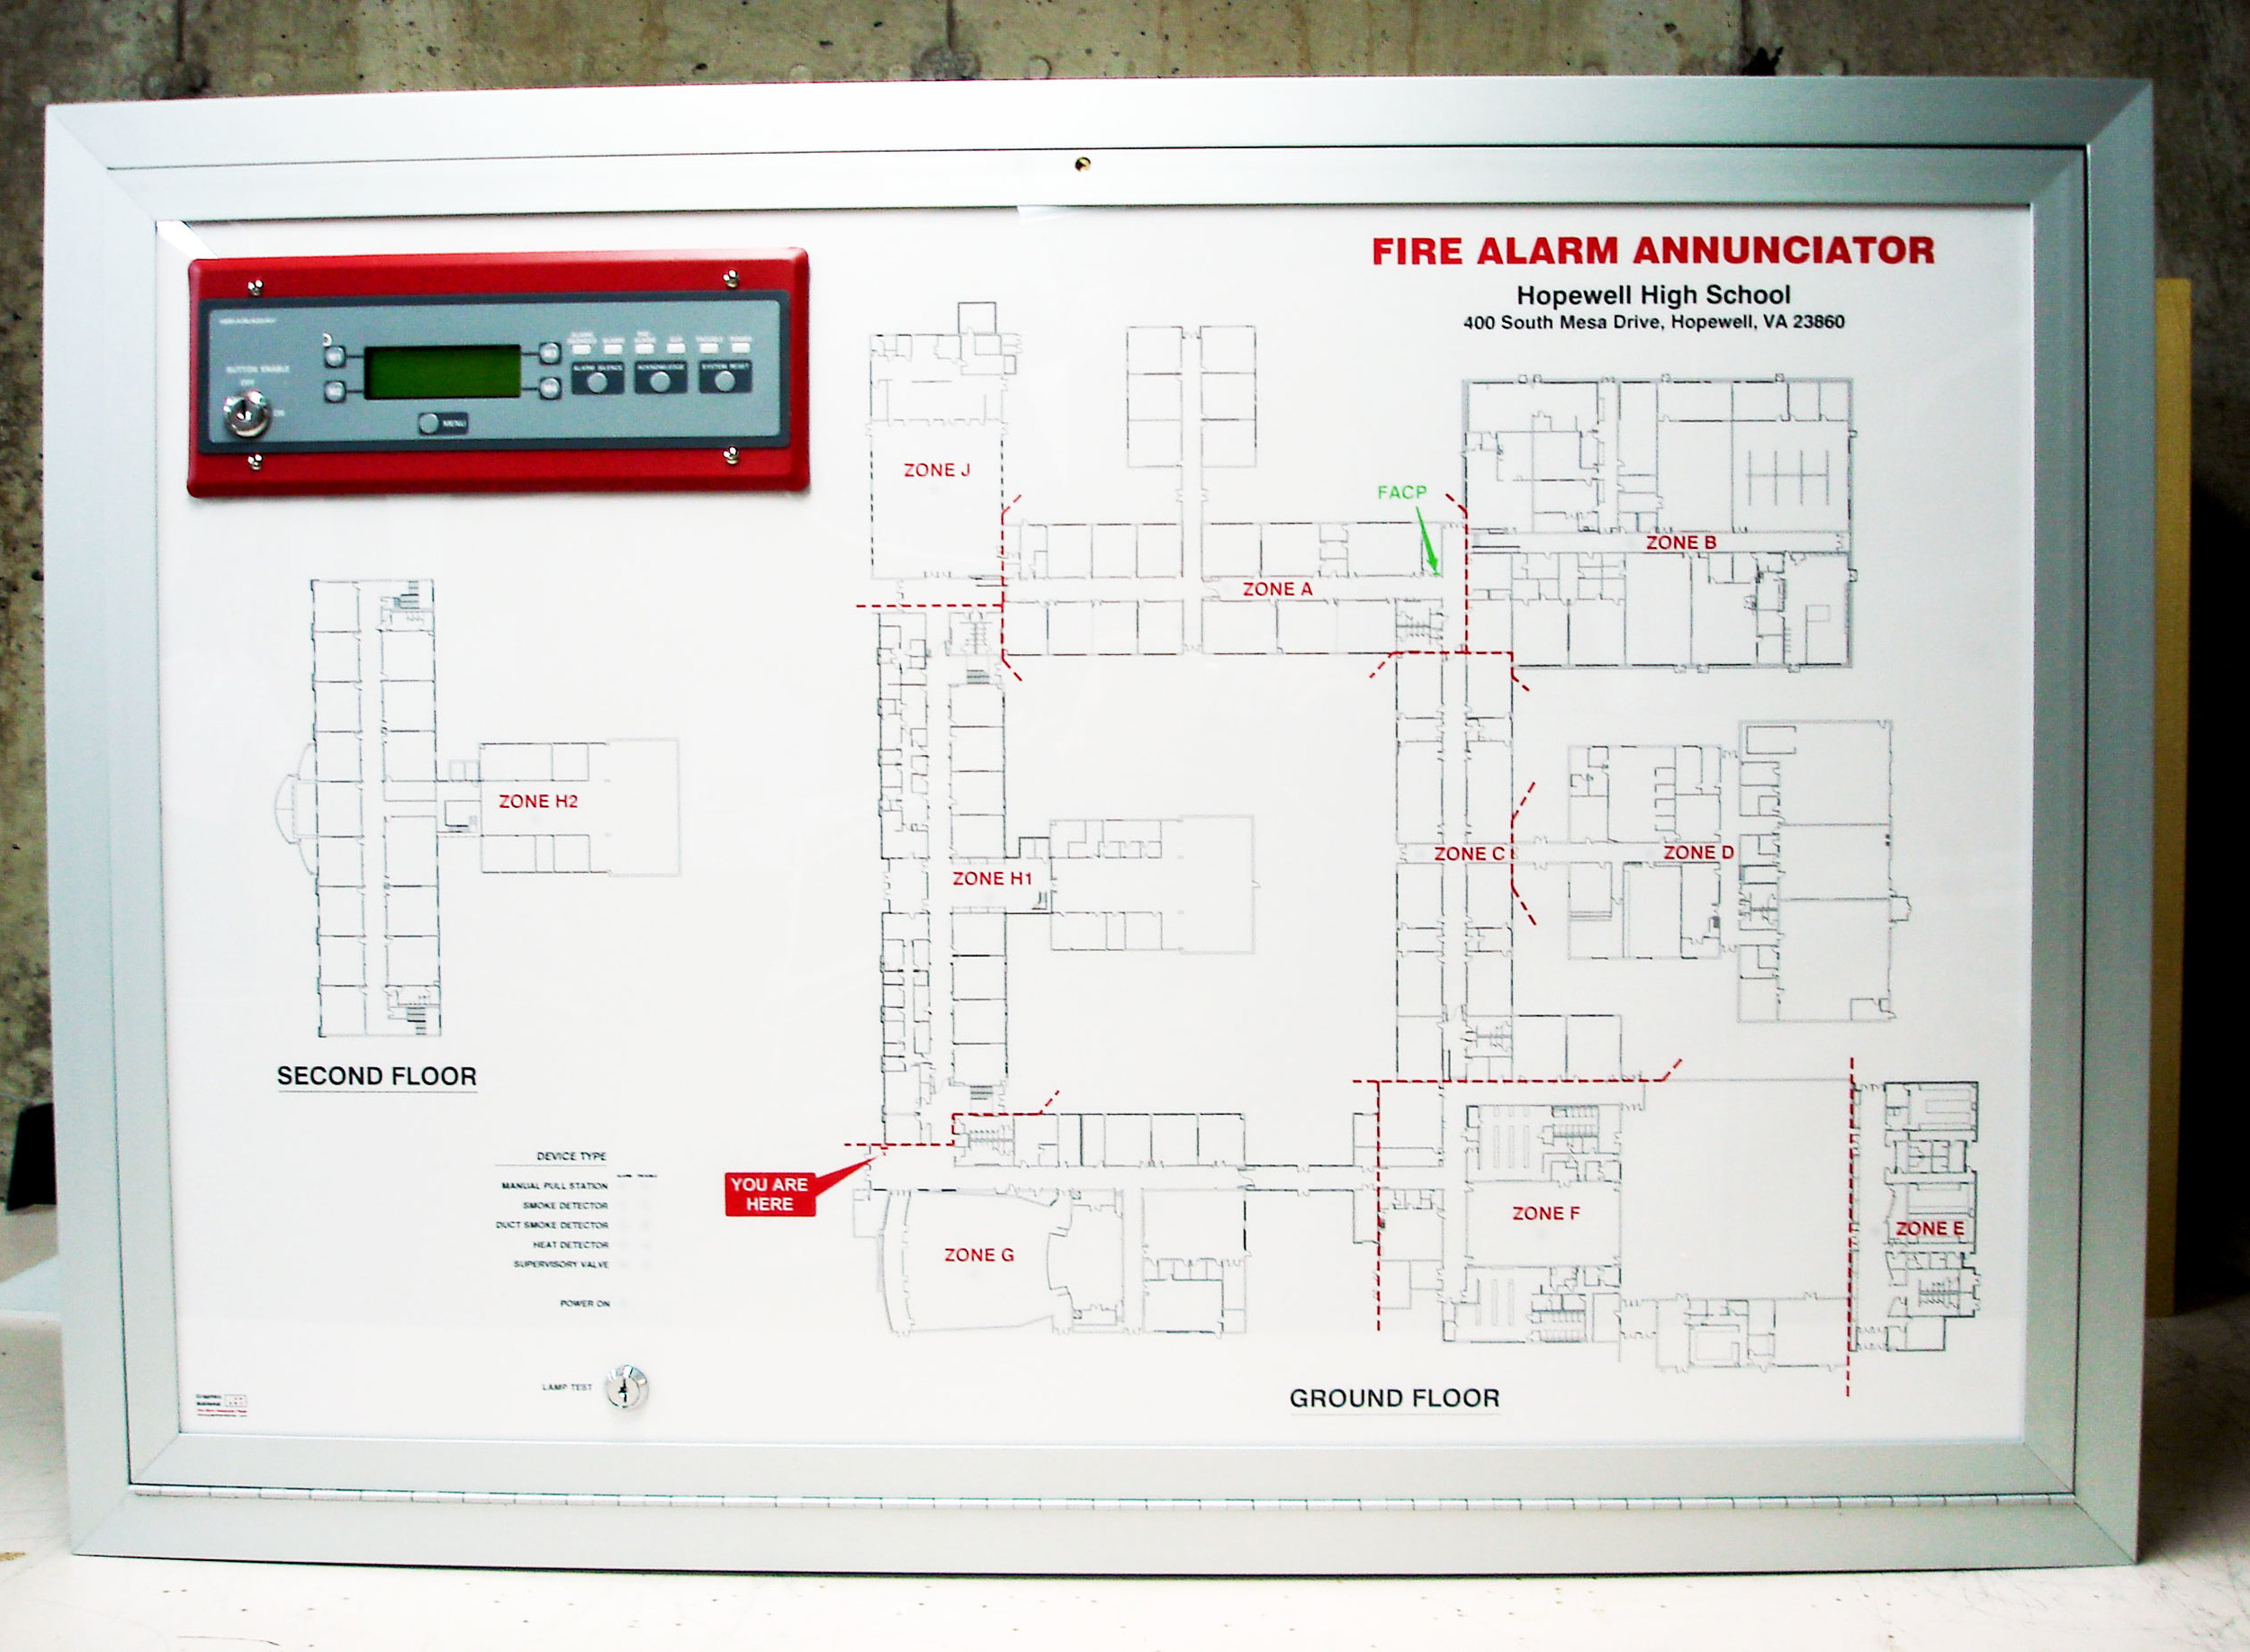 Fire Alarm Graphic Annunciator with LCD Display